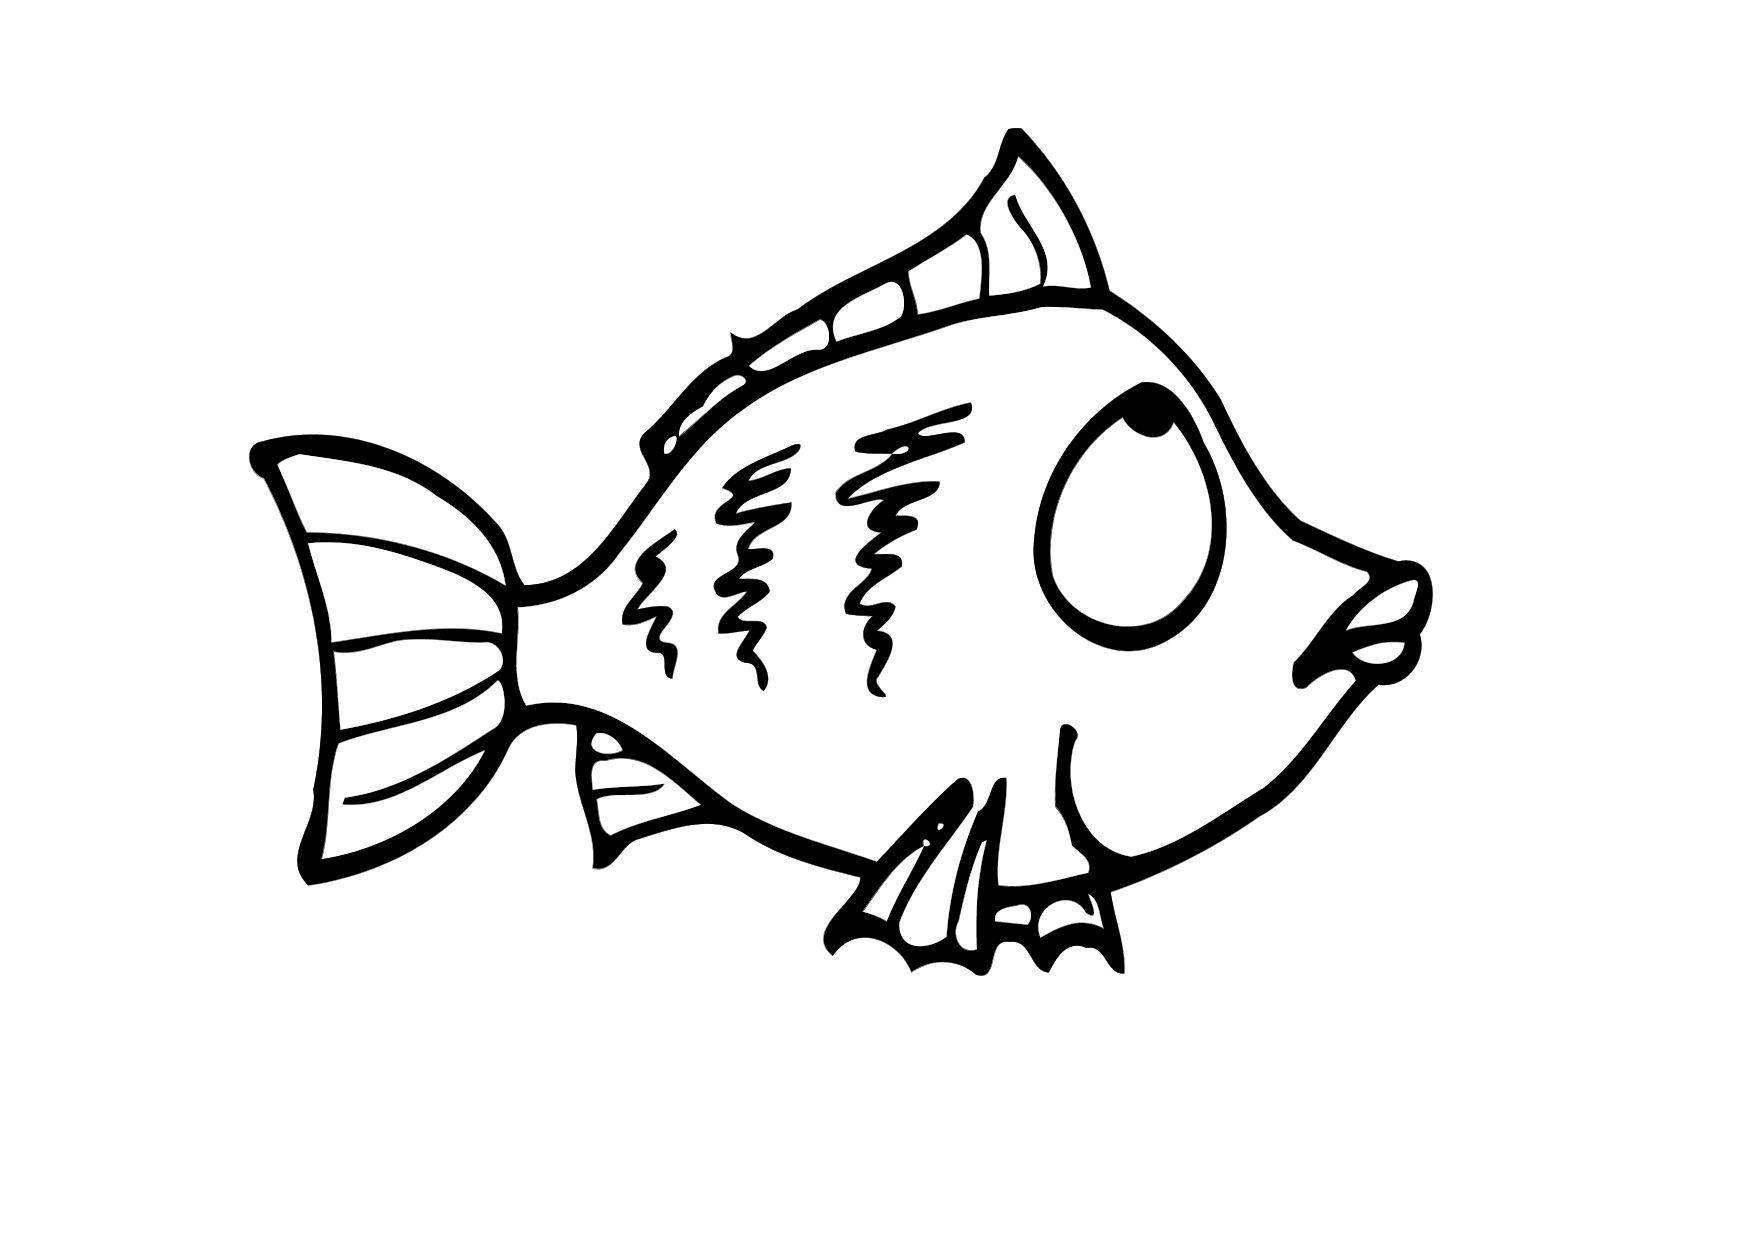 coloring page fish img 12293